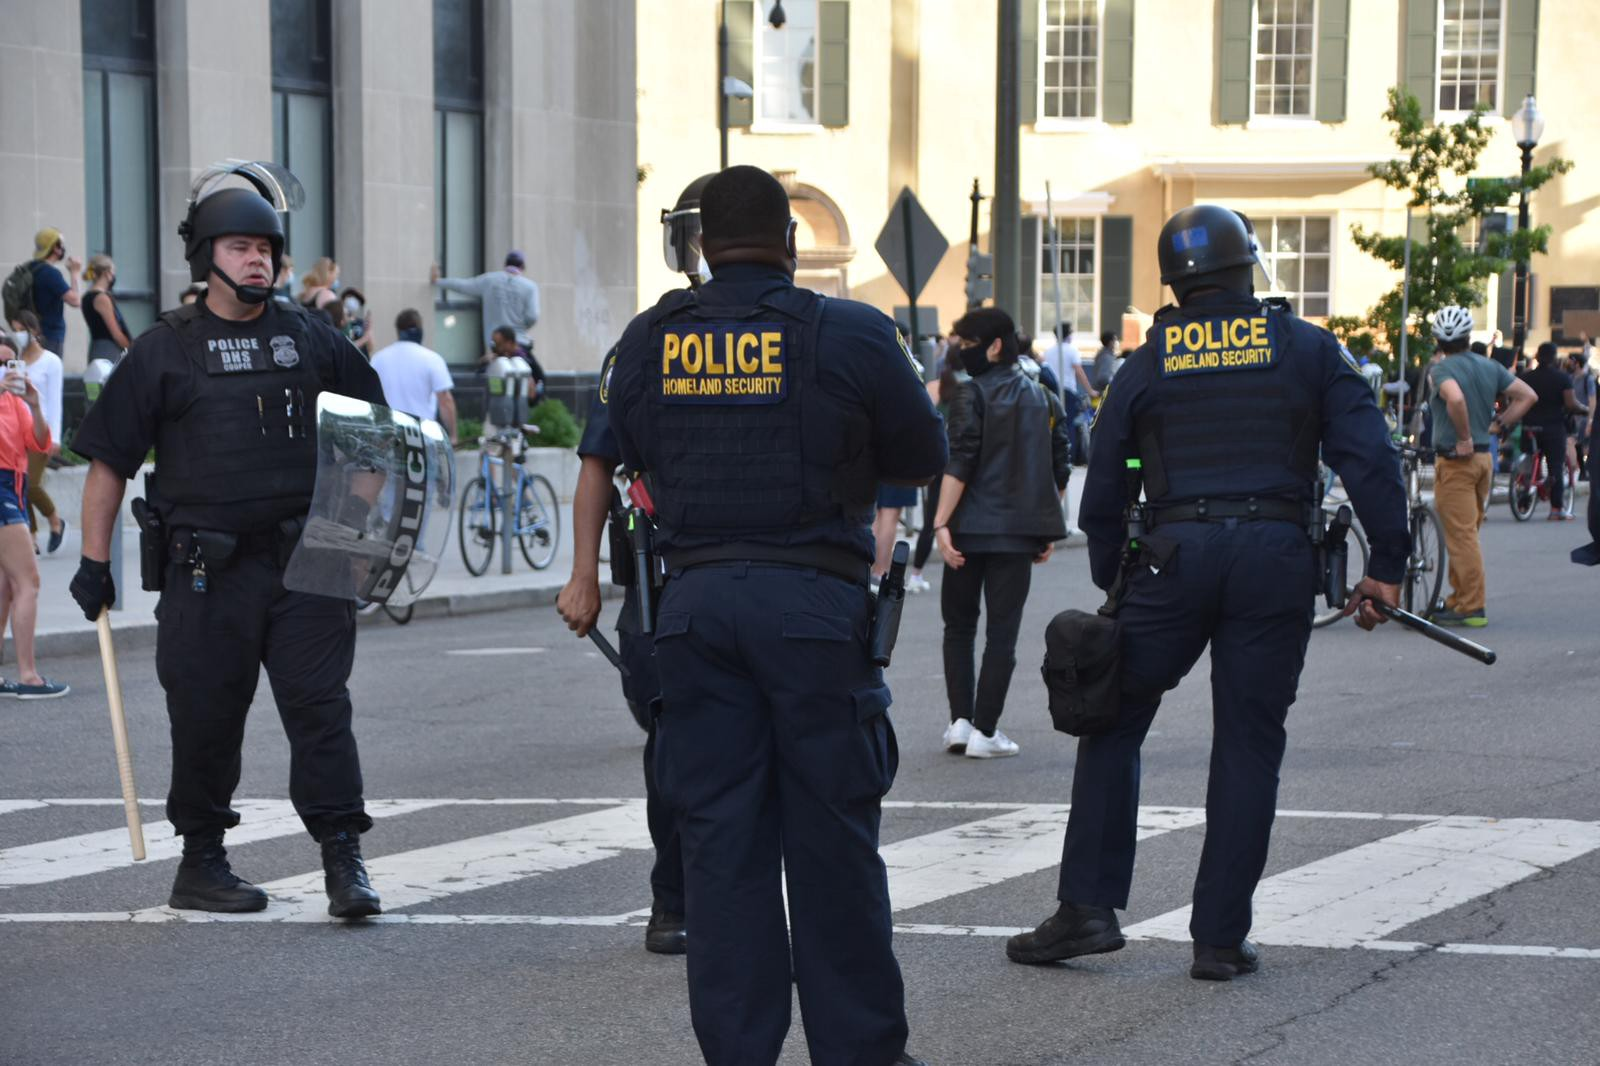 Police officers in helmets holding batons and shields on 16th Street in Washington D.C.